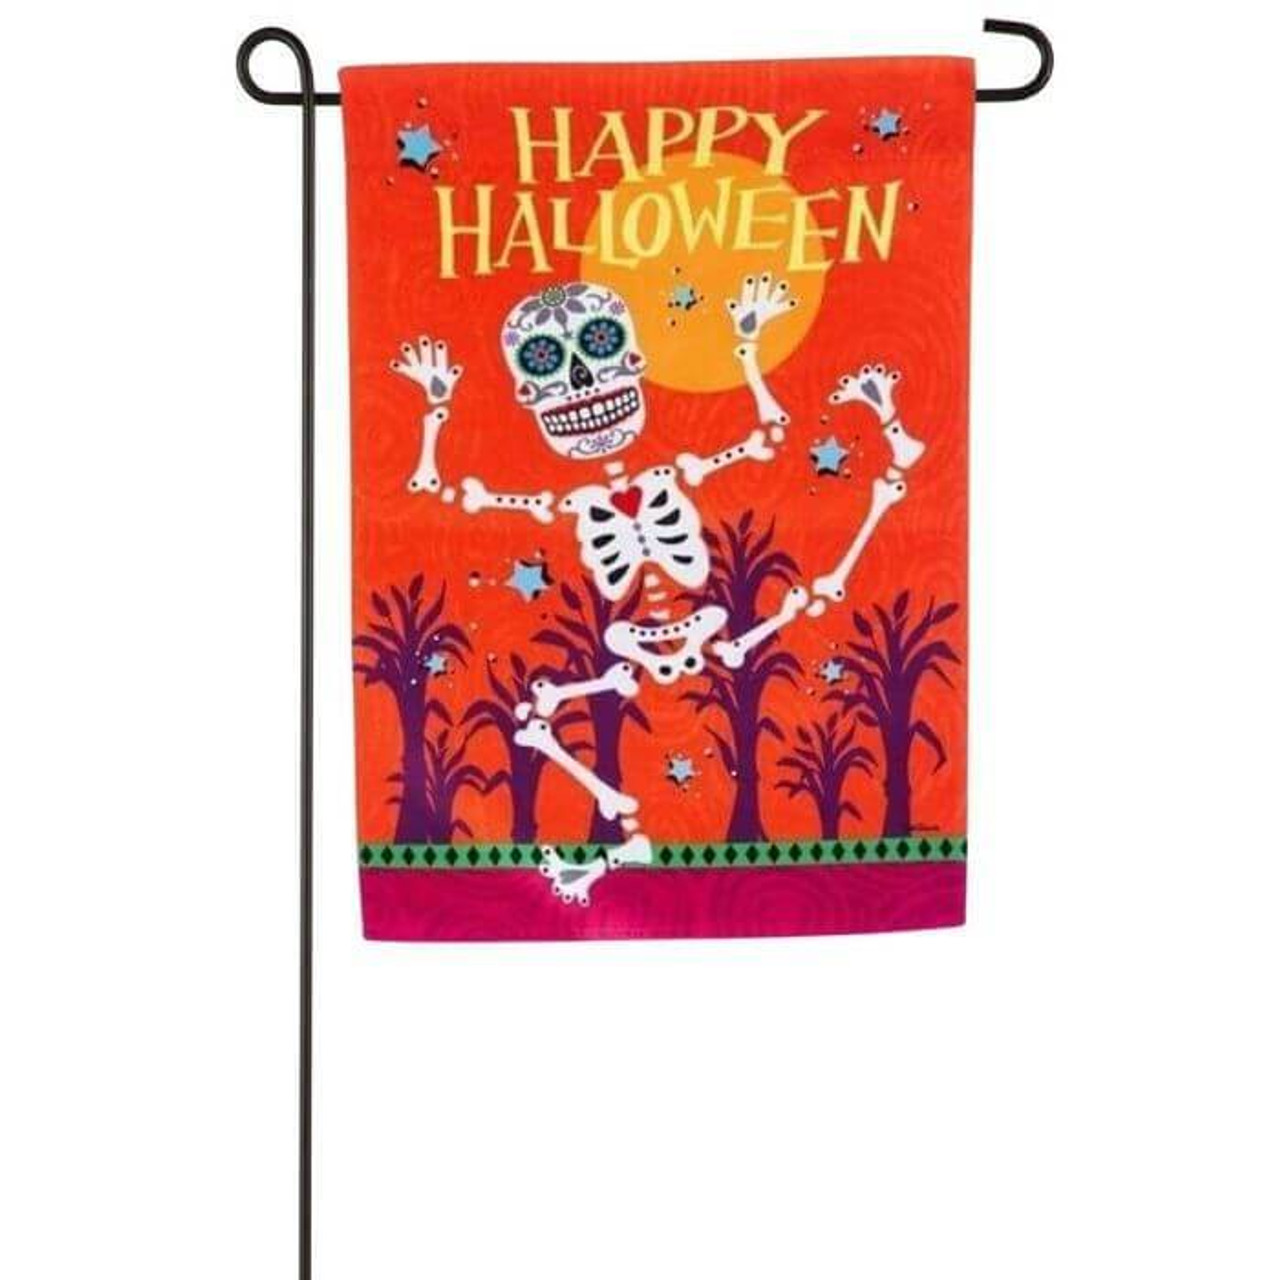 """Small garden flag about a foot wide and a foot and a half tall. Flag is mostly bright orange with a skeleton dancing around under a yellow moon. At the top of the flag reads """"Happy Halloween"""" in all caps."""